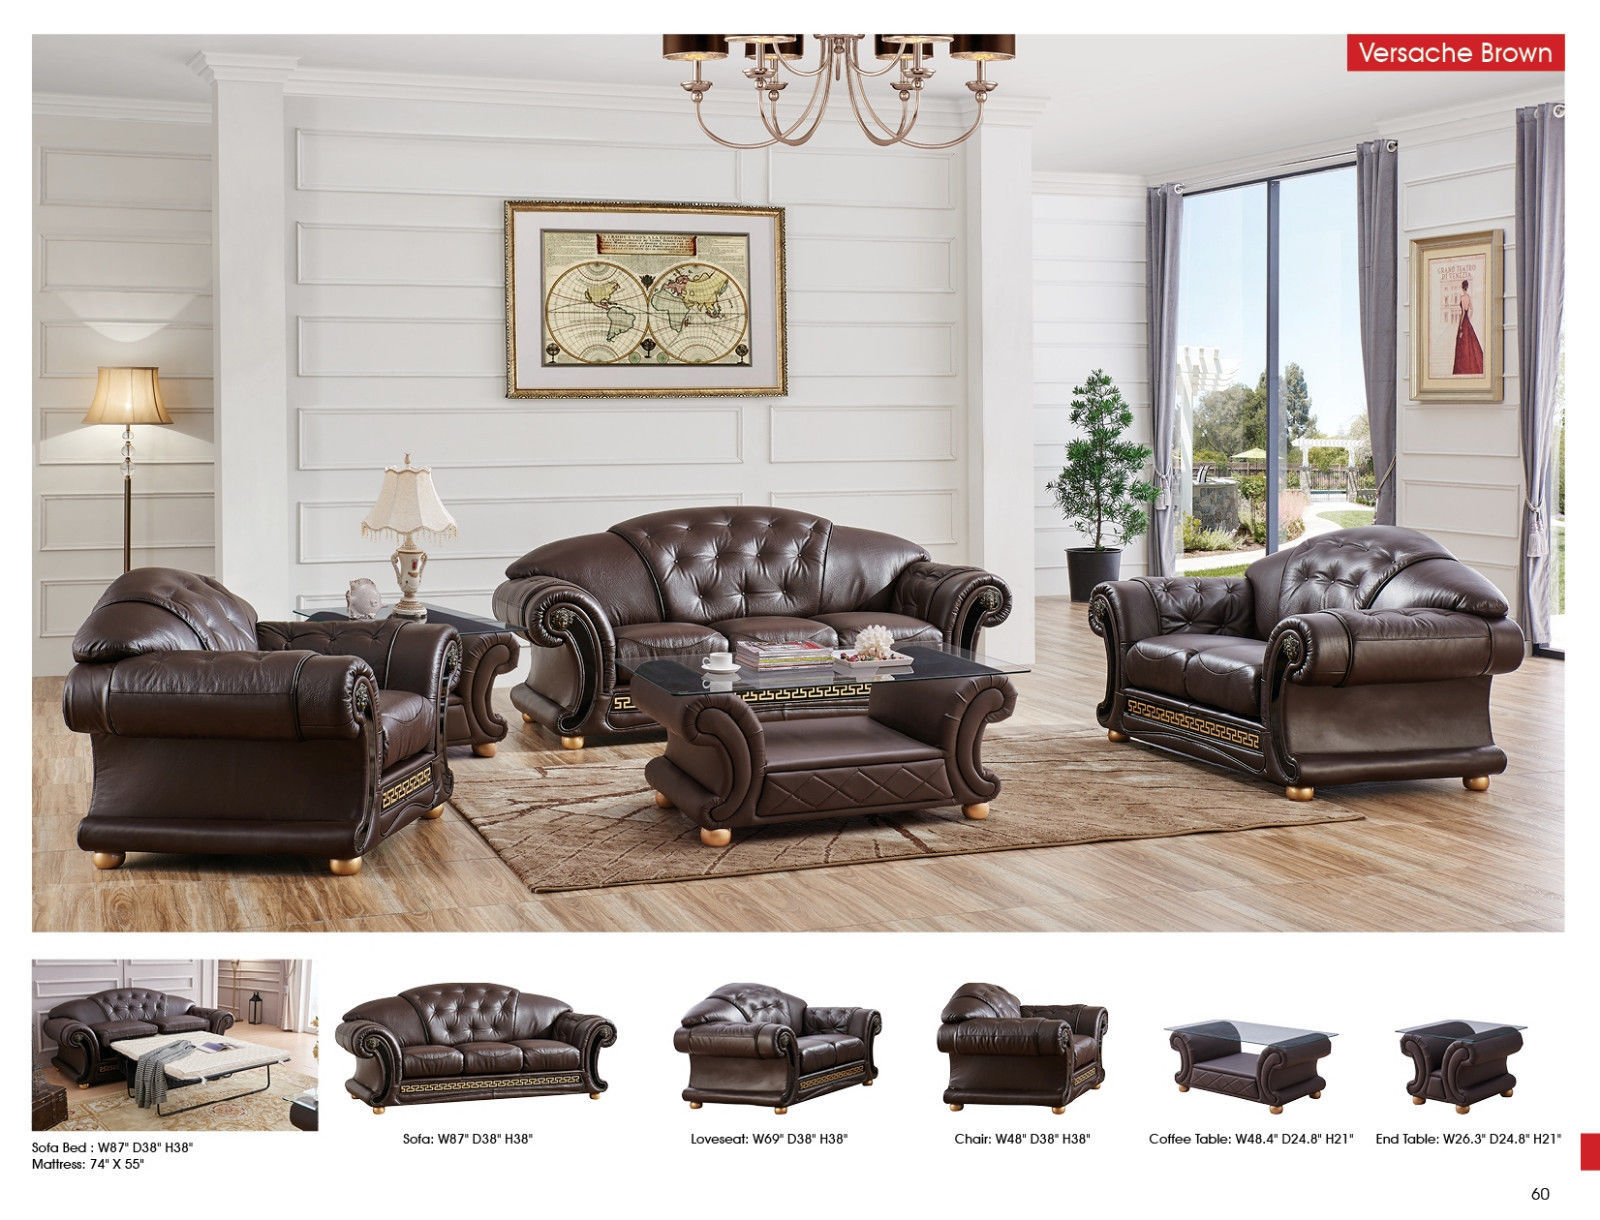 ESF Versachi Leather Living Room Sofa Tufted Brown Classic Traditional Style